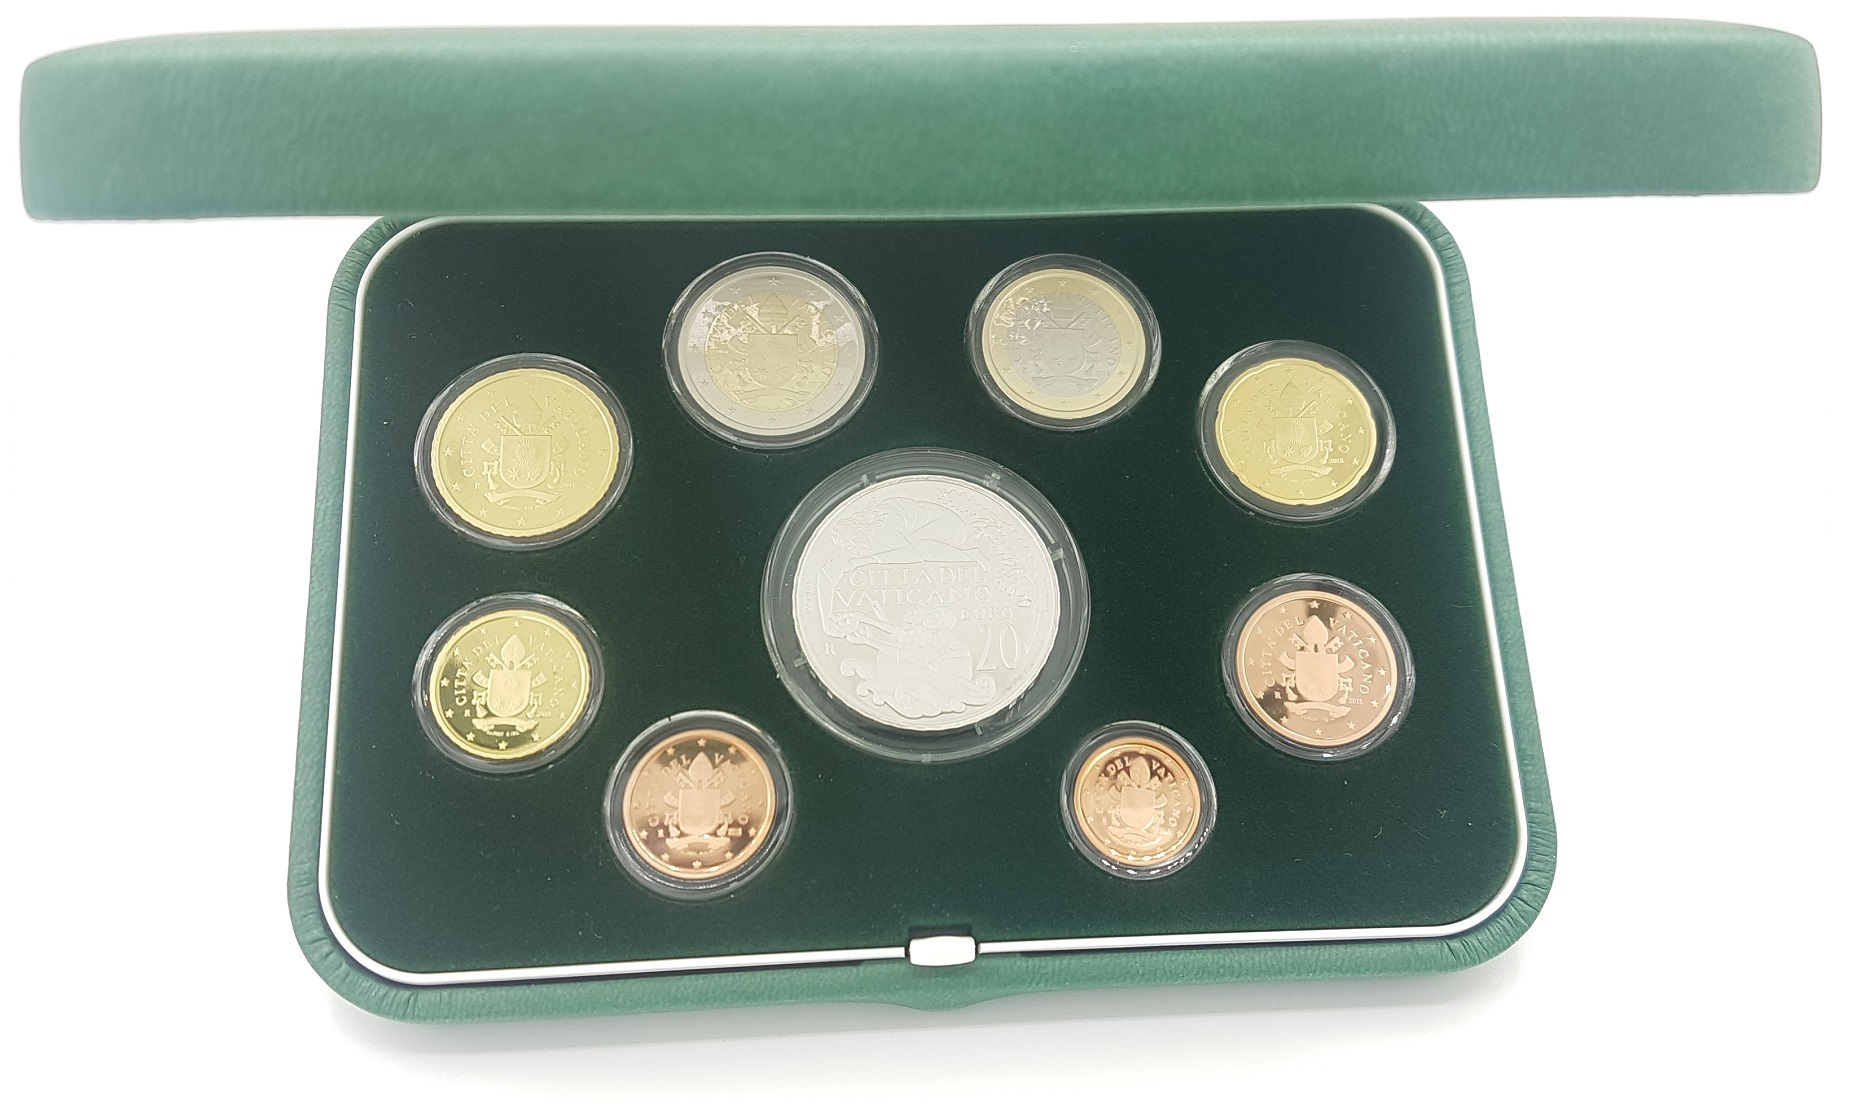 (EUR19.CofBE.2018.CN1429.000000001) Proof coin set Vatican State 2018 (inside) (zoom)